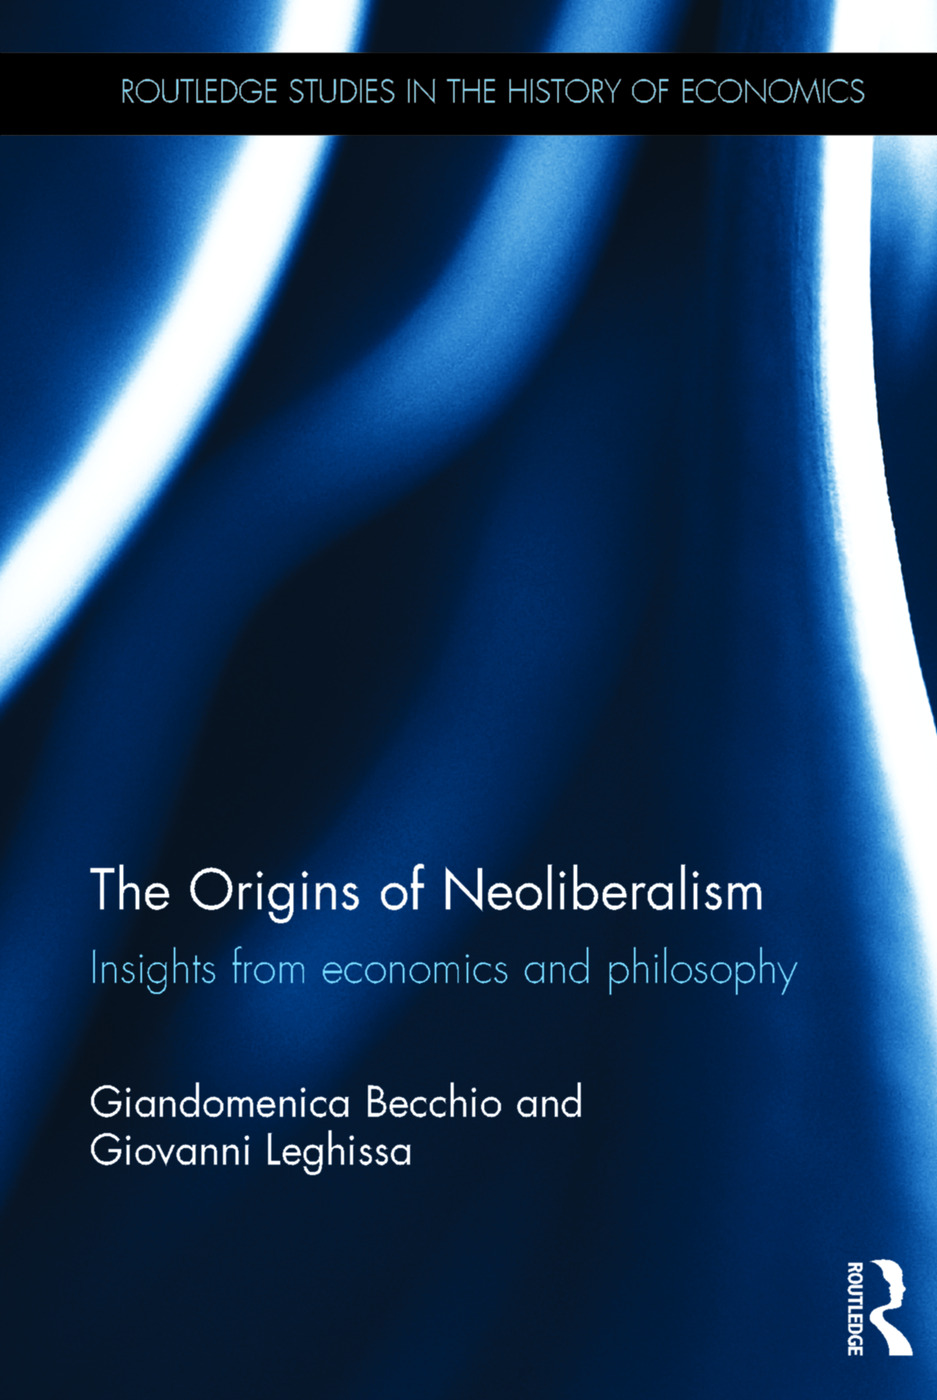 The Origins of Neoliberalism: Insights from economics and philosophy book cover